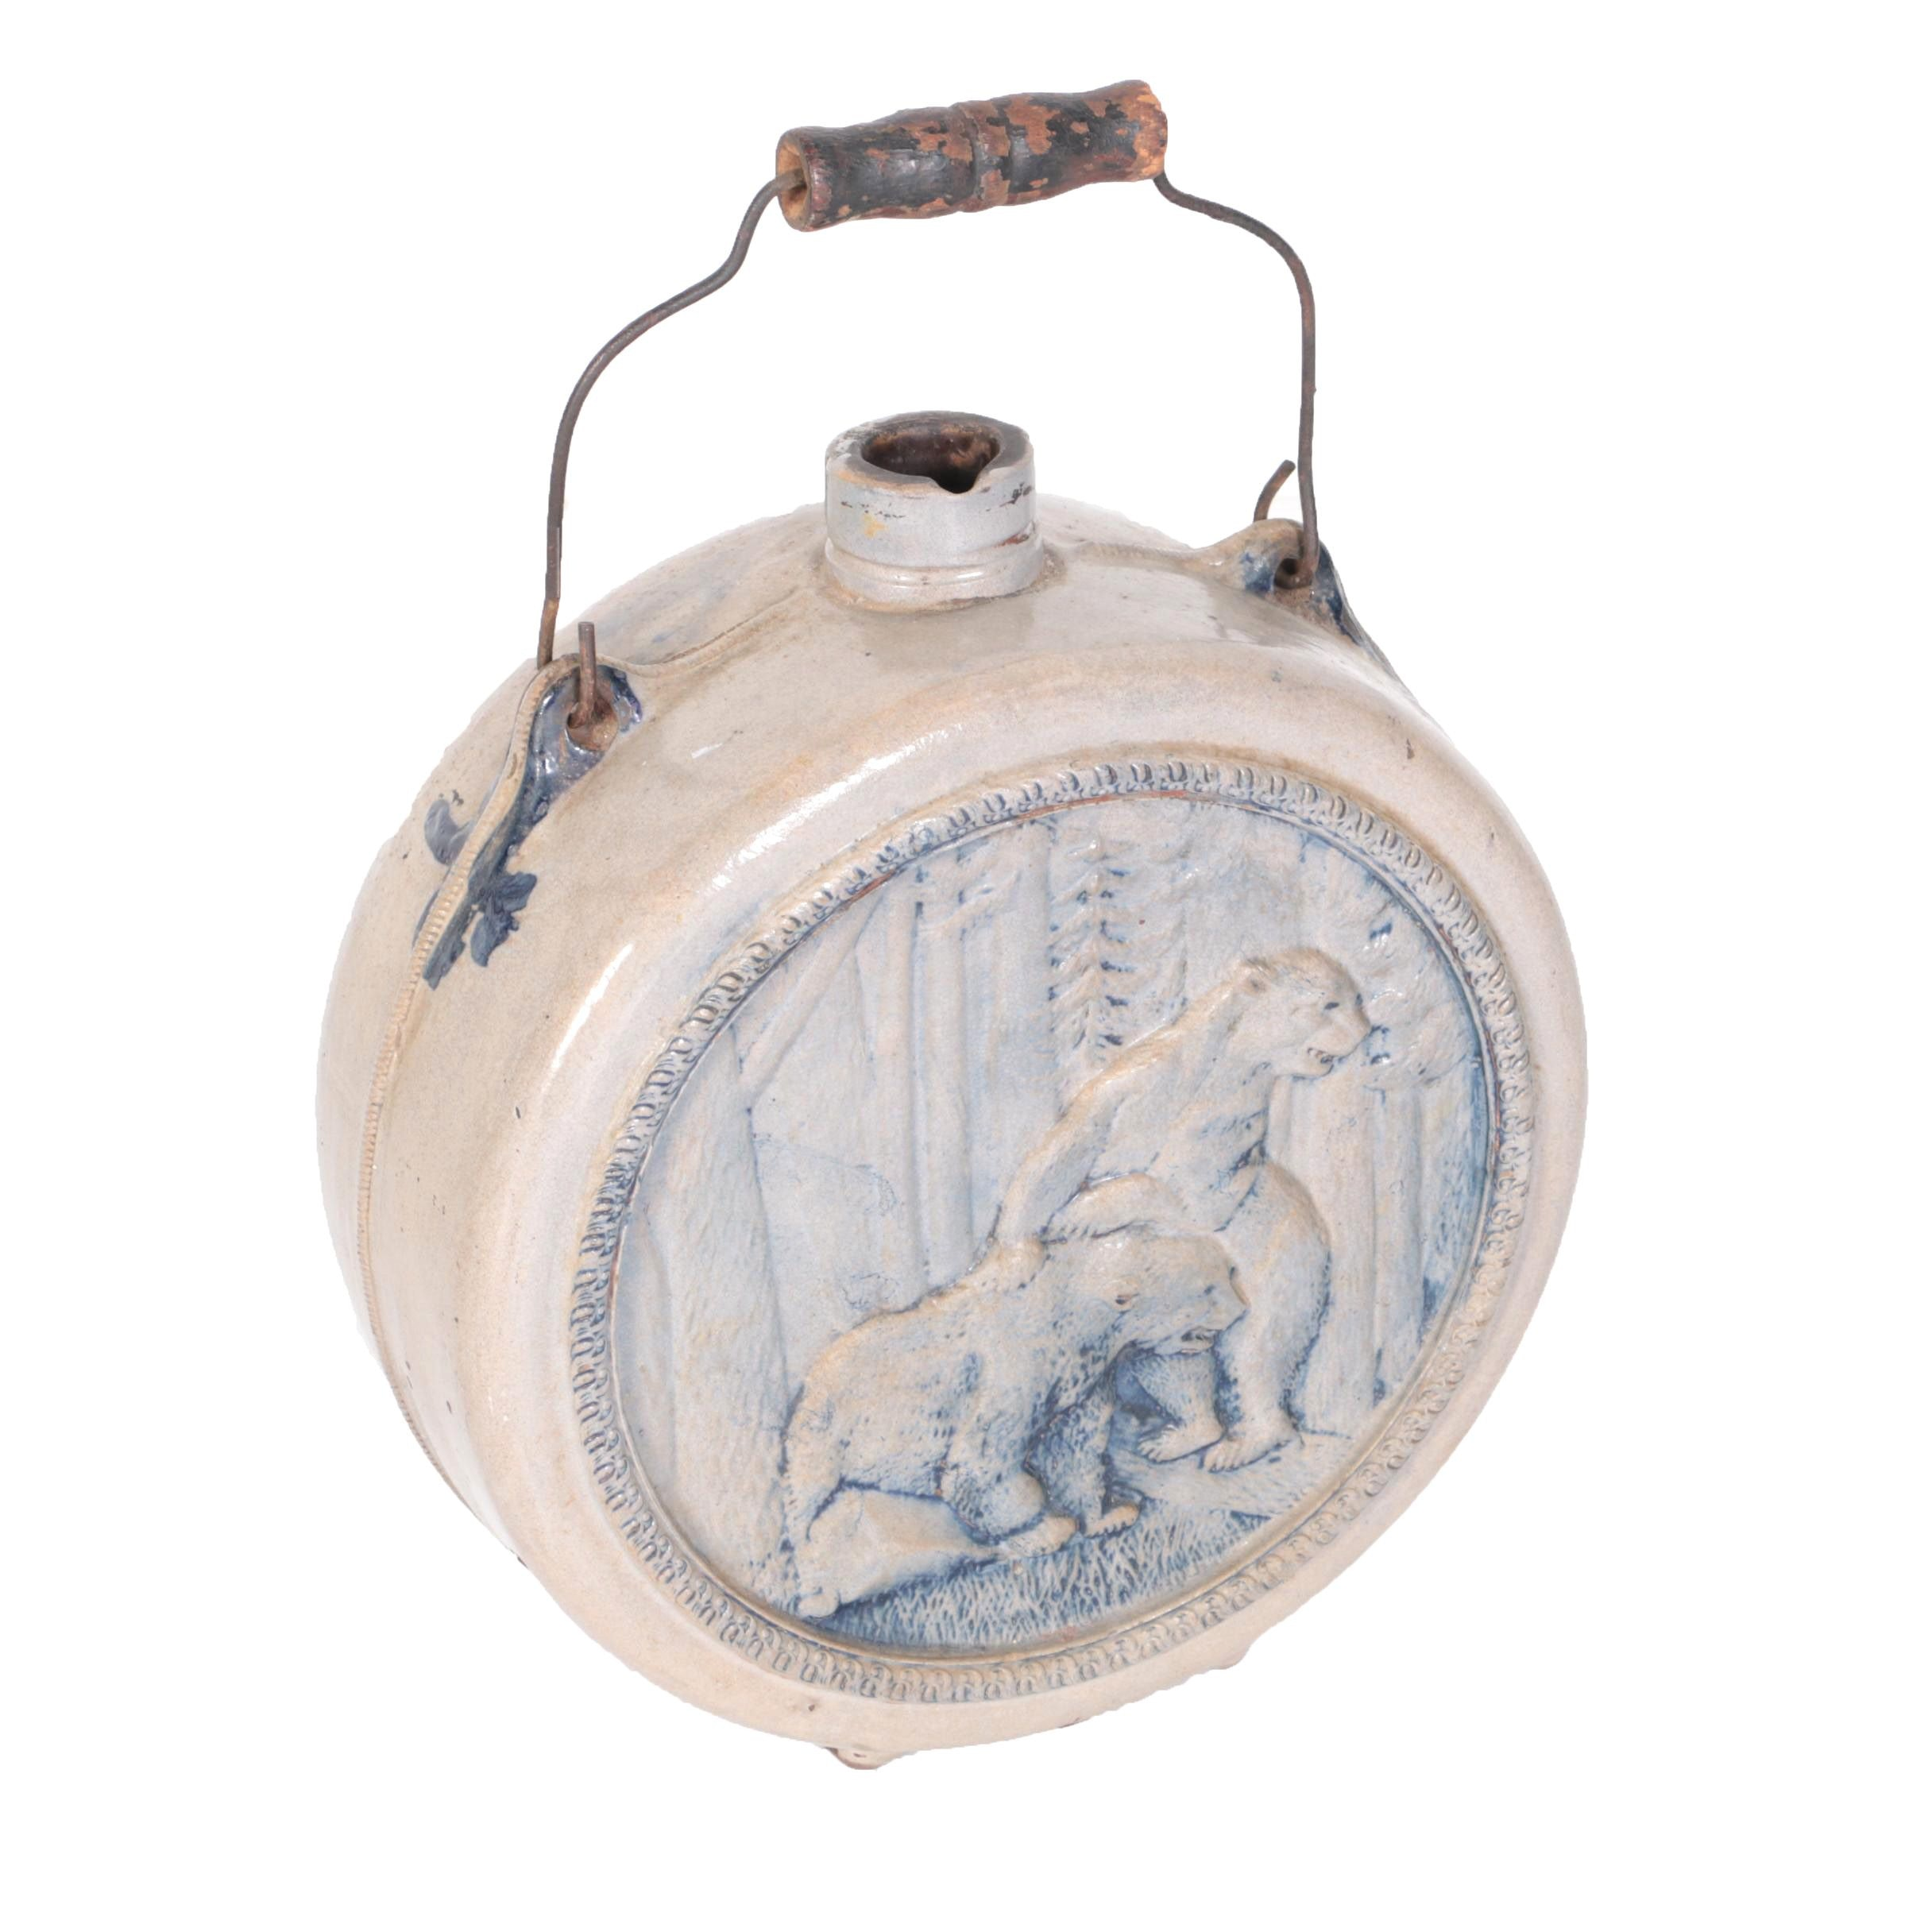 Stoneware Round Jug with Bears Relief, Late 19th-Century